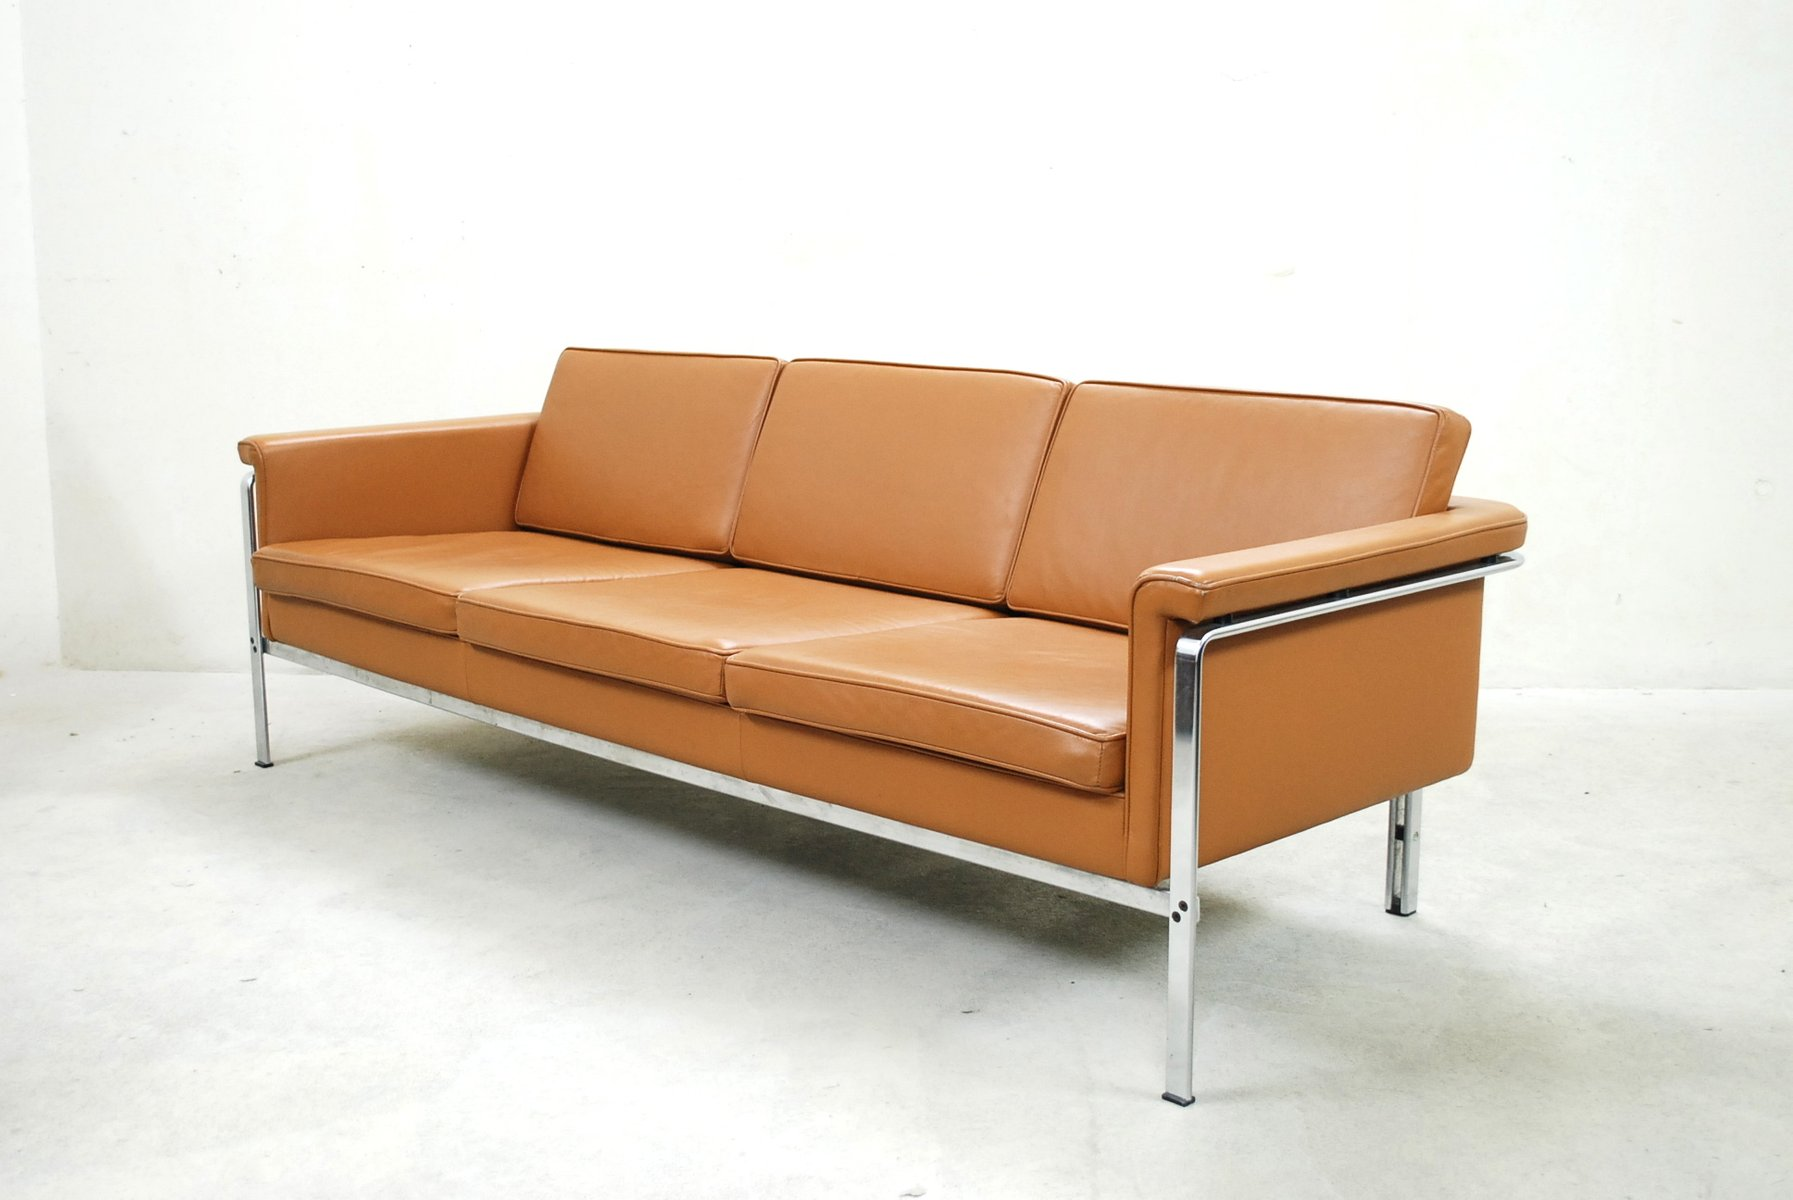 german 6913 cognac leather sofa by horst br ning for kill international 1960s for sale at pamono. Black Bedroom Furniture Sets. Home Design Ideas